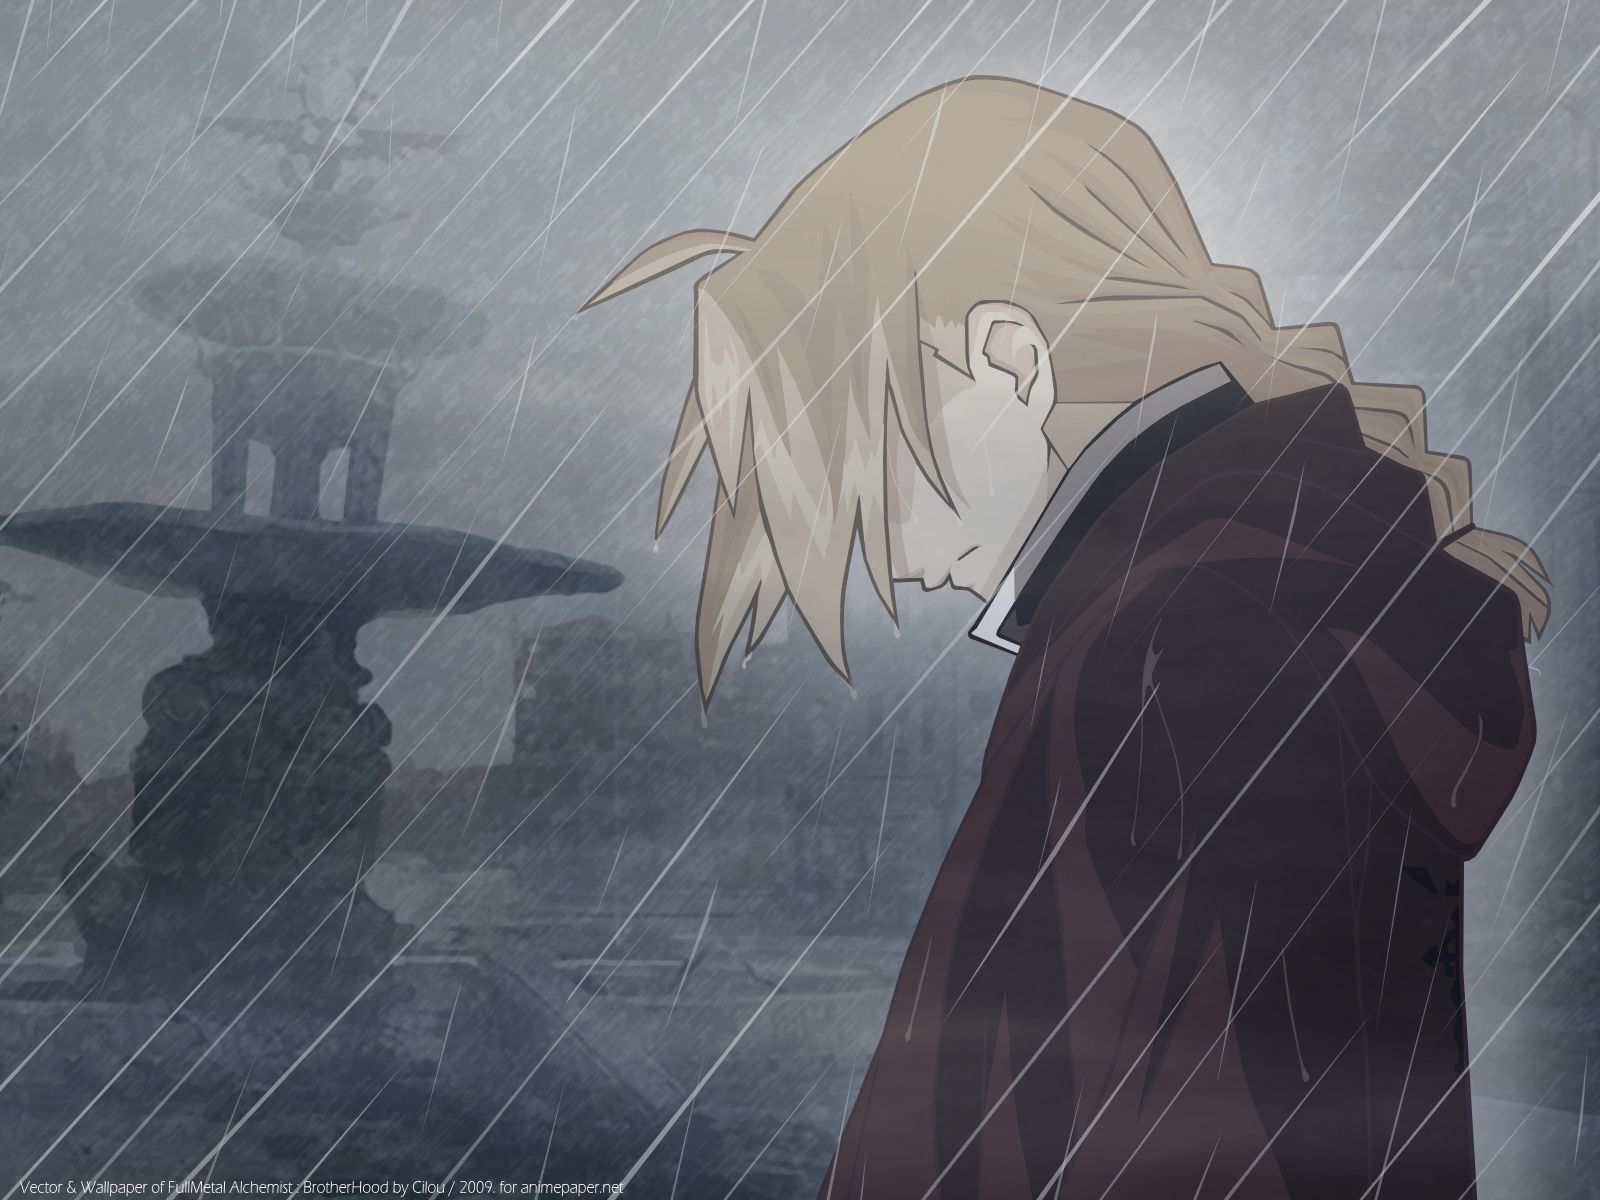 edward wallpaper full metal alchemist wallpaper